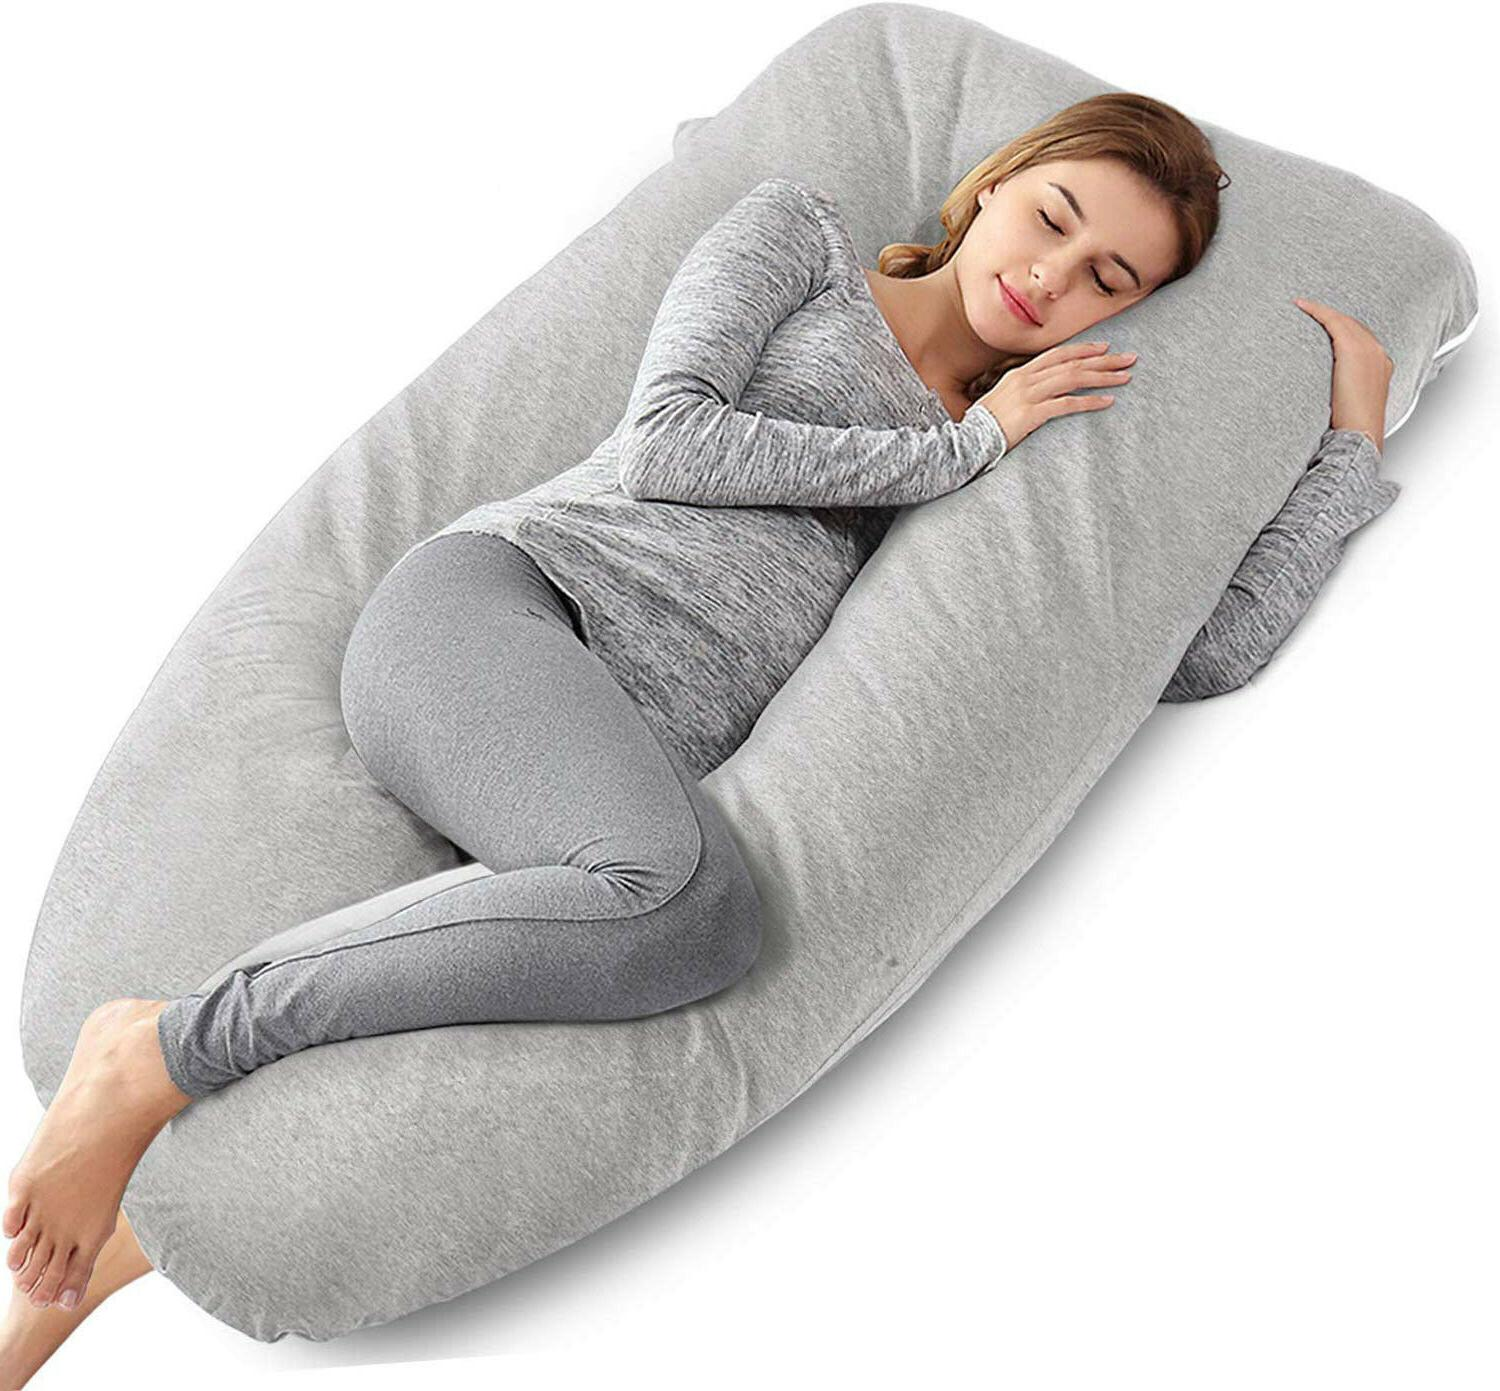 u shape full body pregnancy maternity pillow